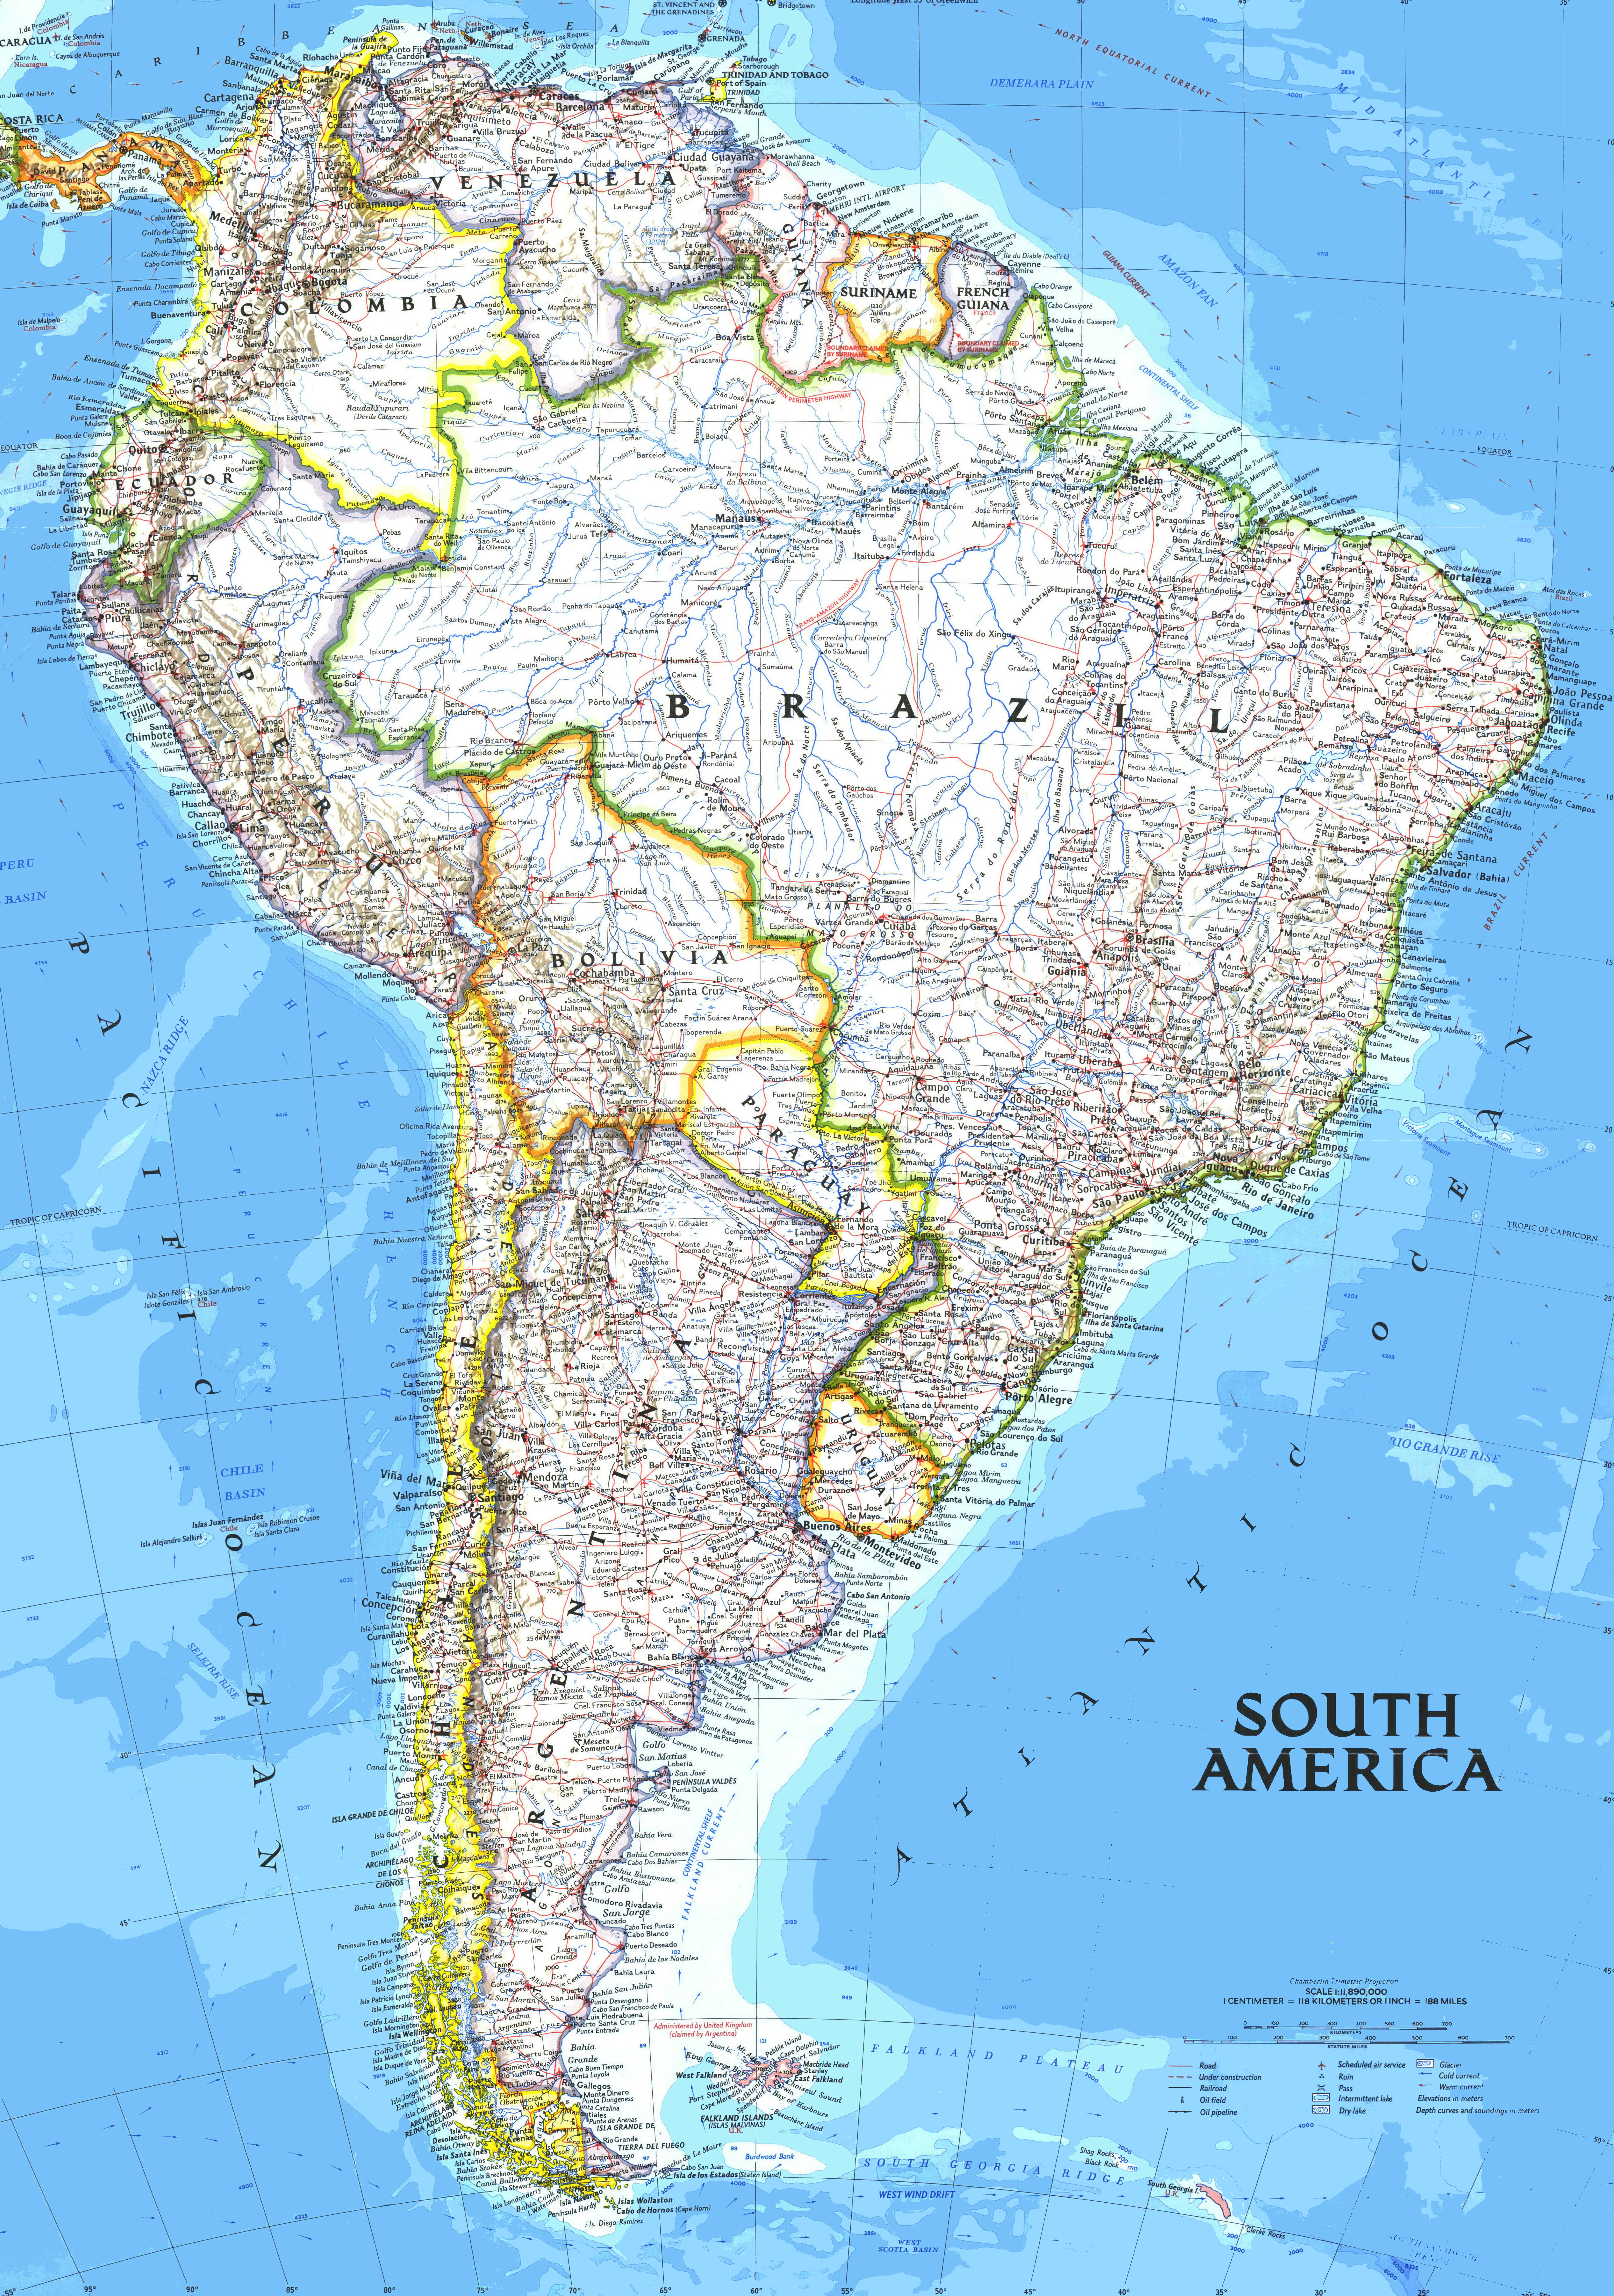 Maps Of South America - South america argentina map